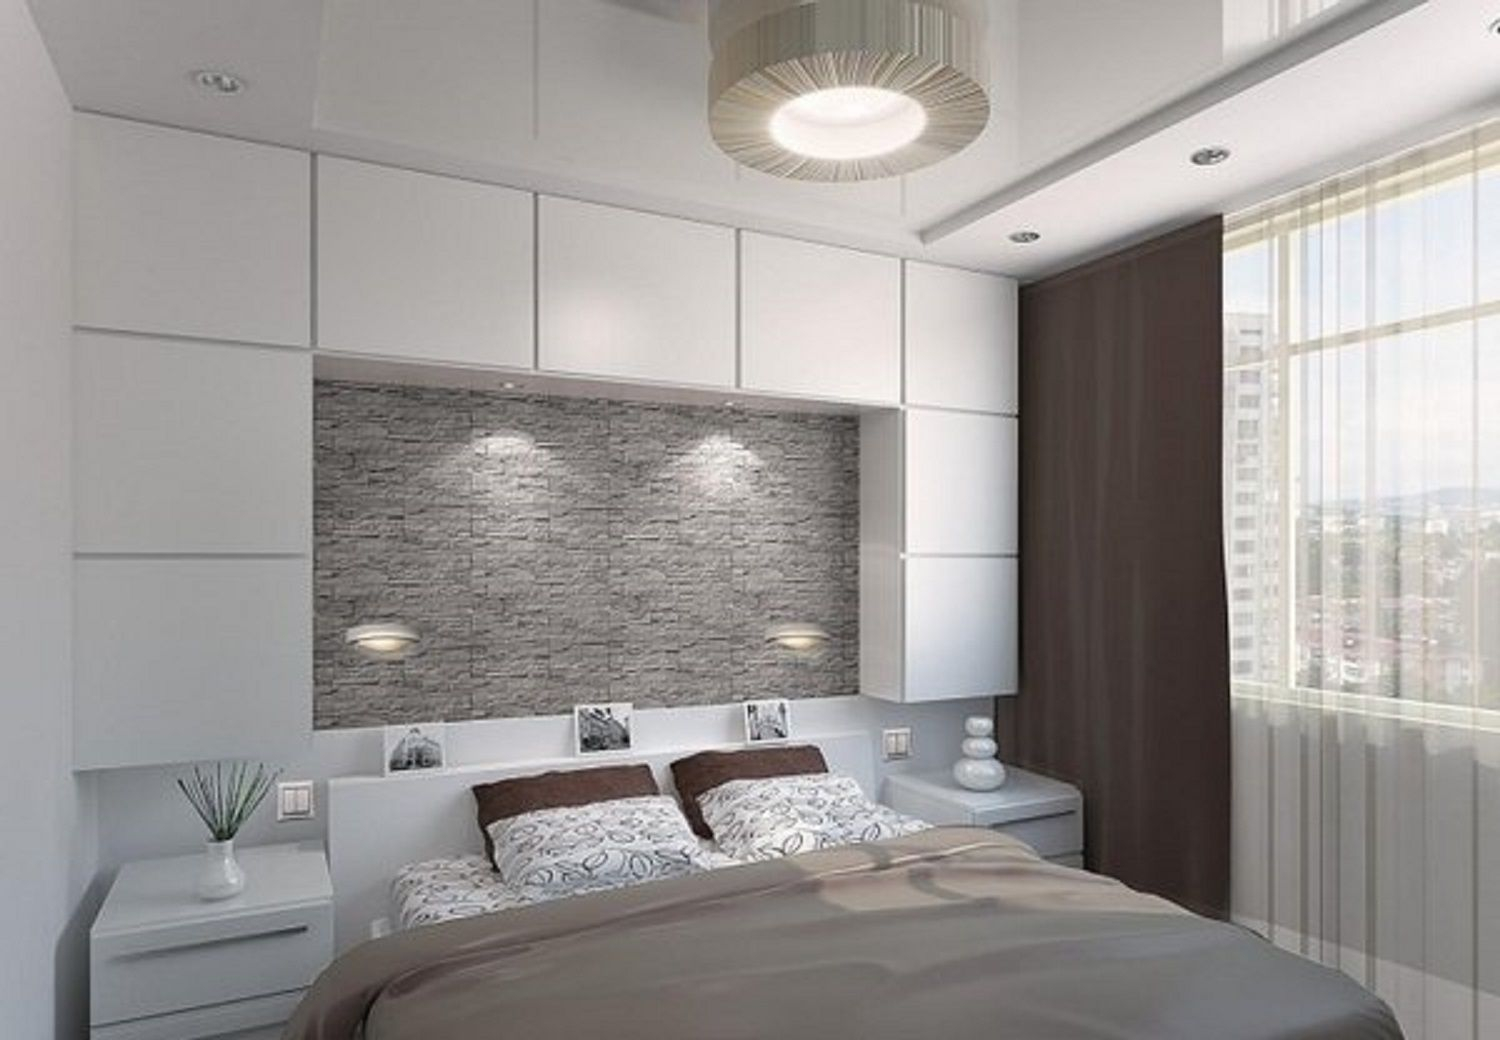 25 Tips And Photos For Decorating A Modern Master Bedroom within Images Of Modern Bedrooms